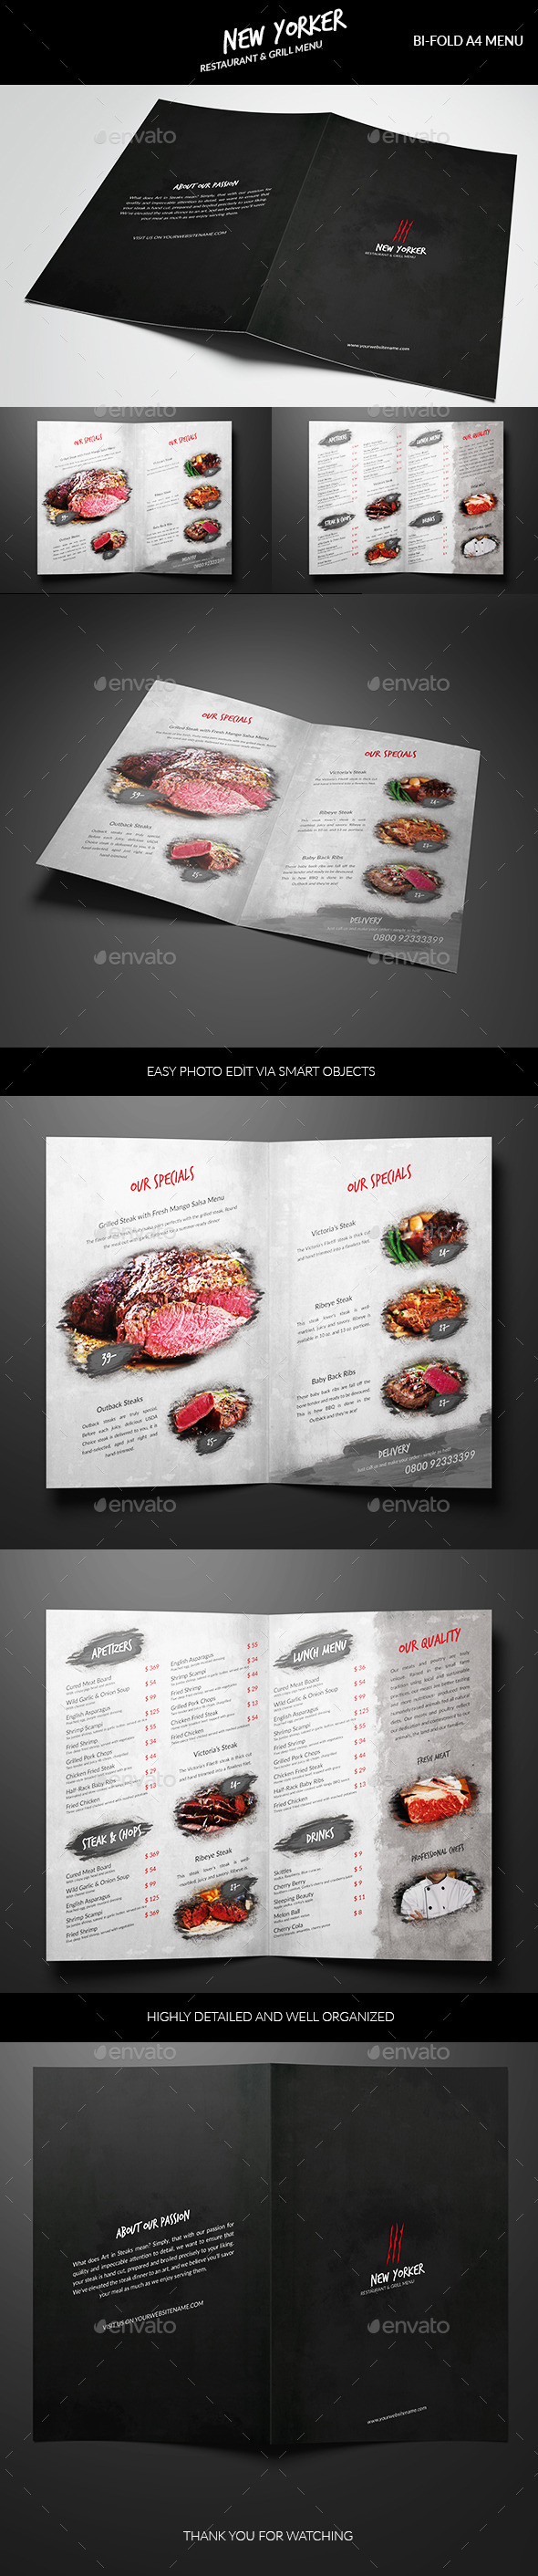 NewYorker Restaurant menu - Food Menus Print Templates